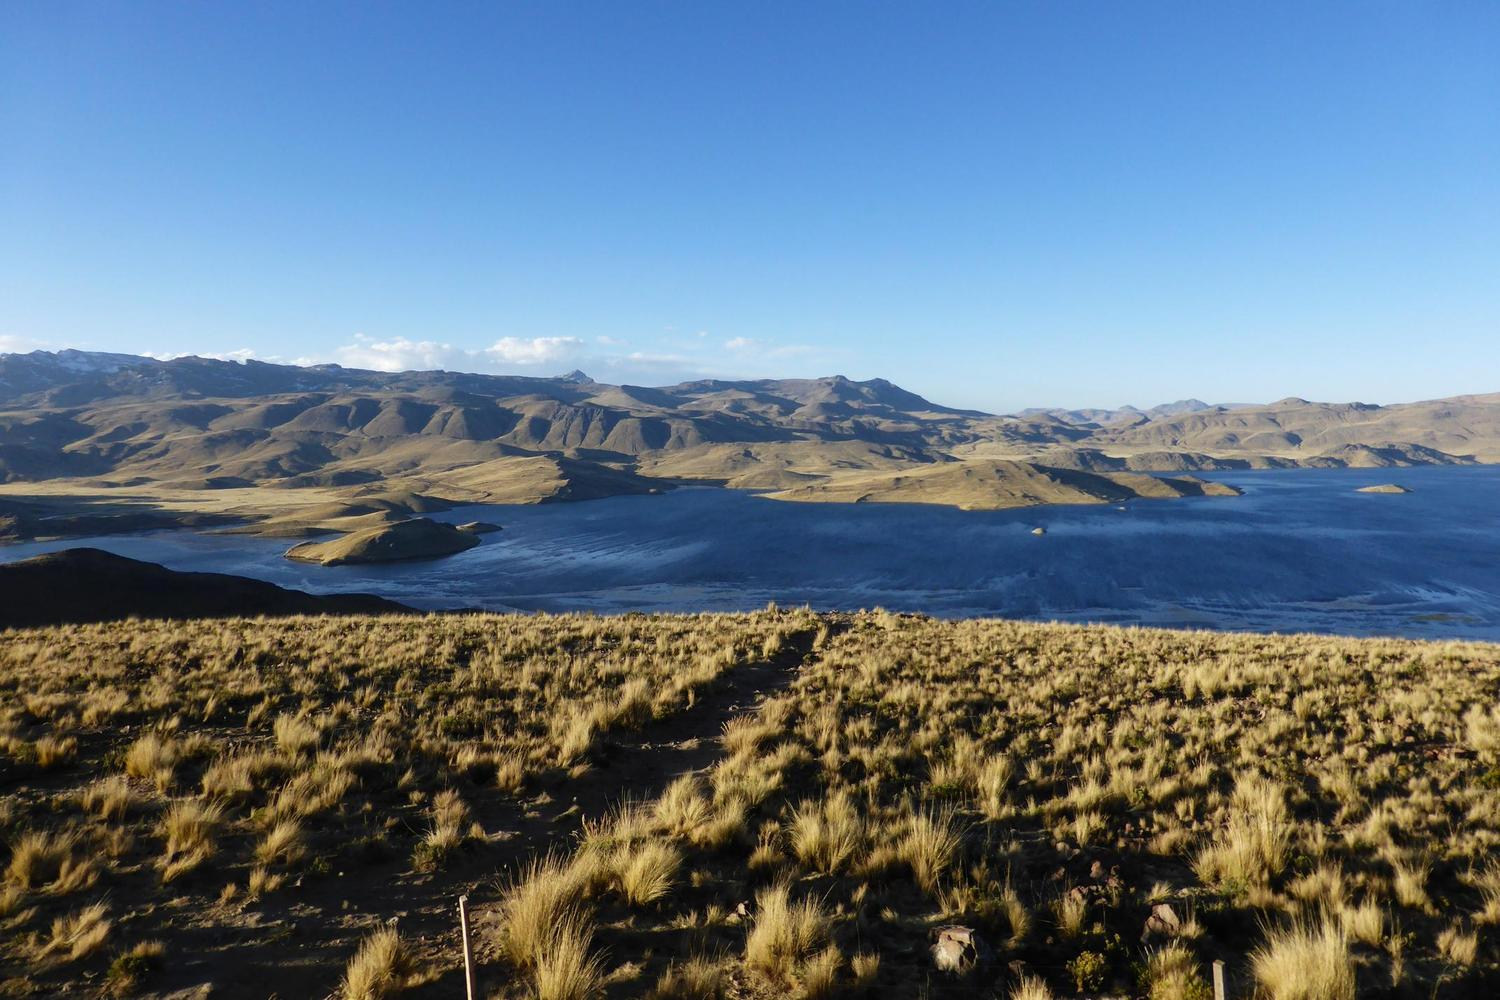 High lagoon in the Altiplano outside Arequipa, Peru